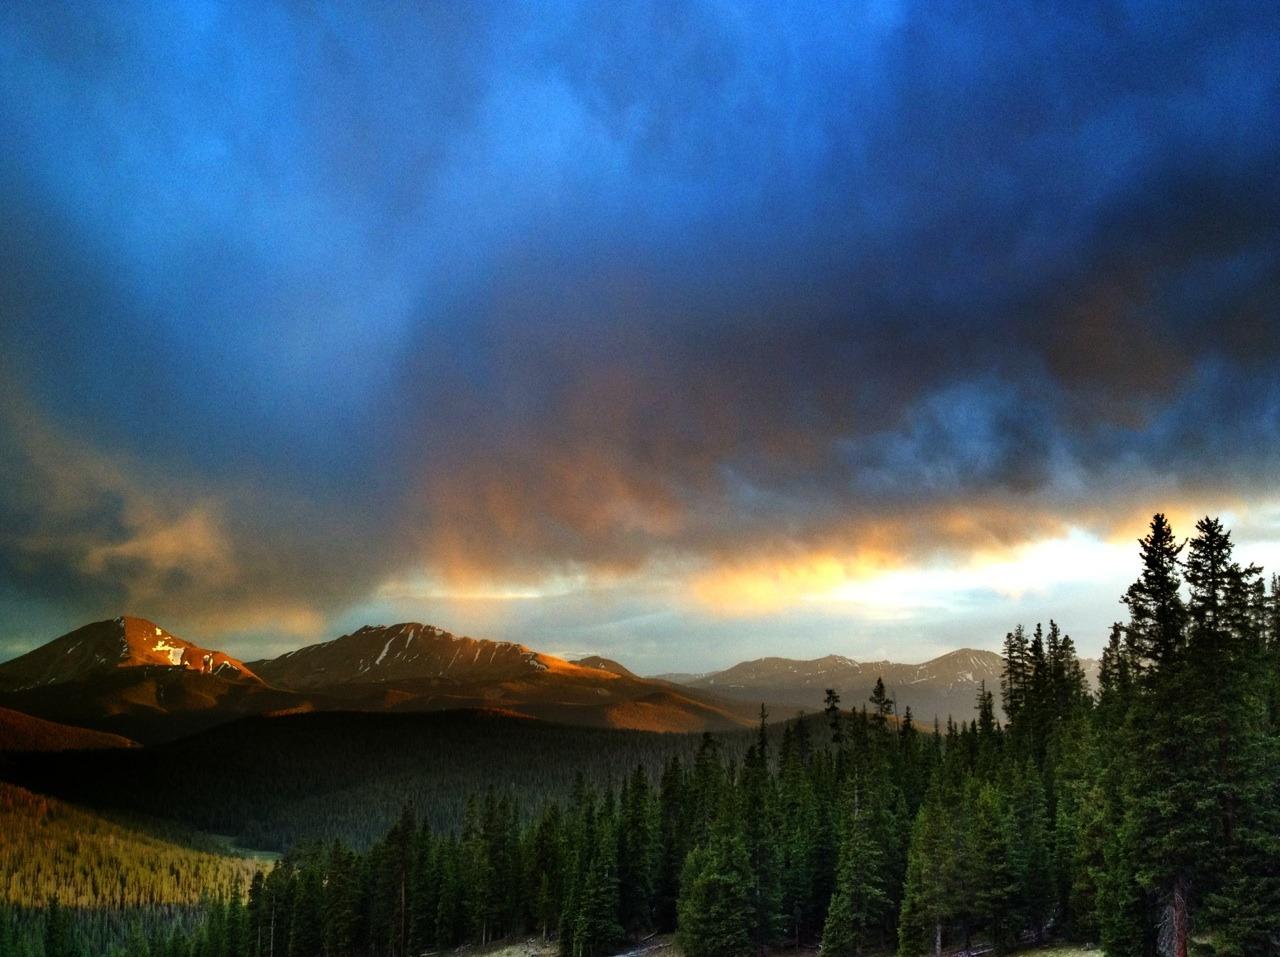 Golden Hour in Keystone, Colorado